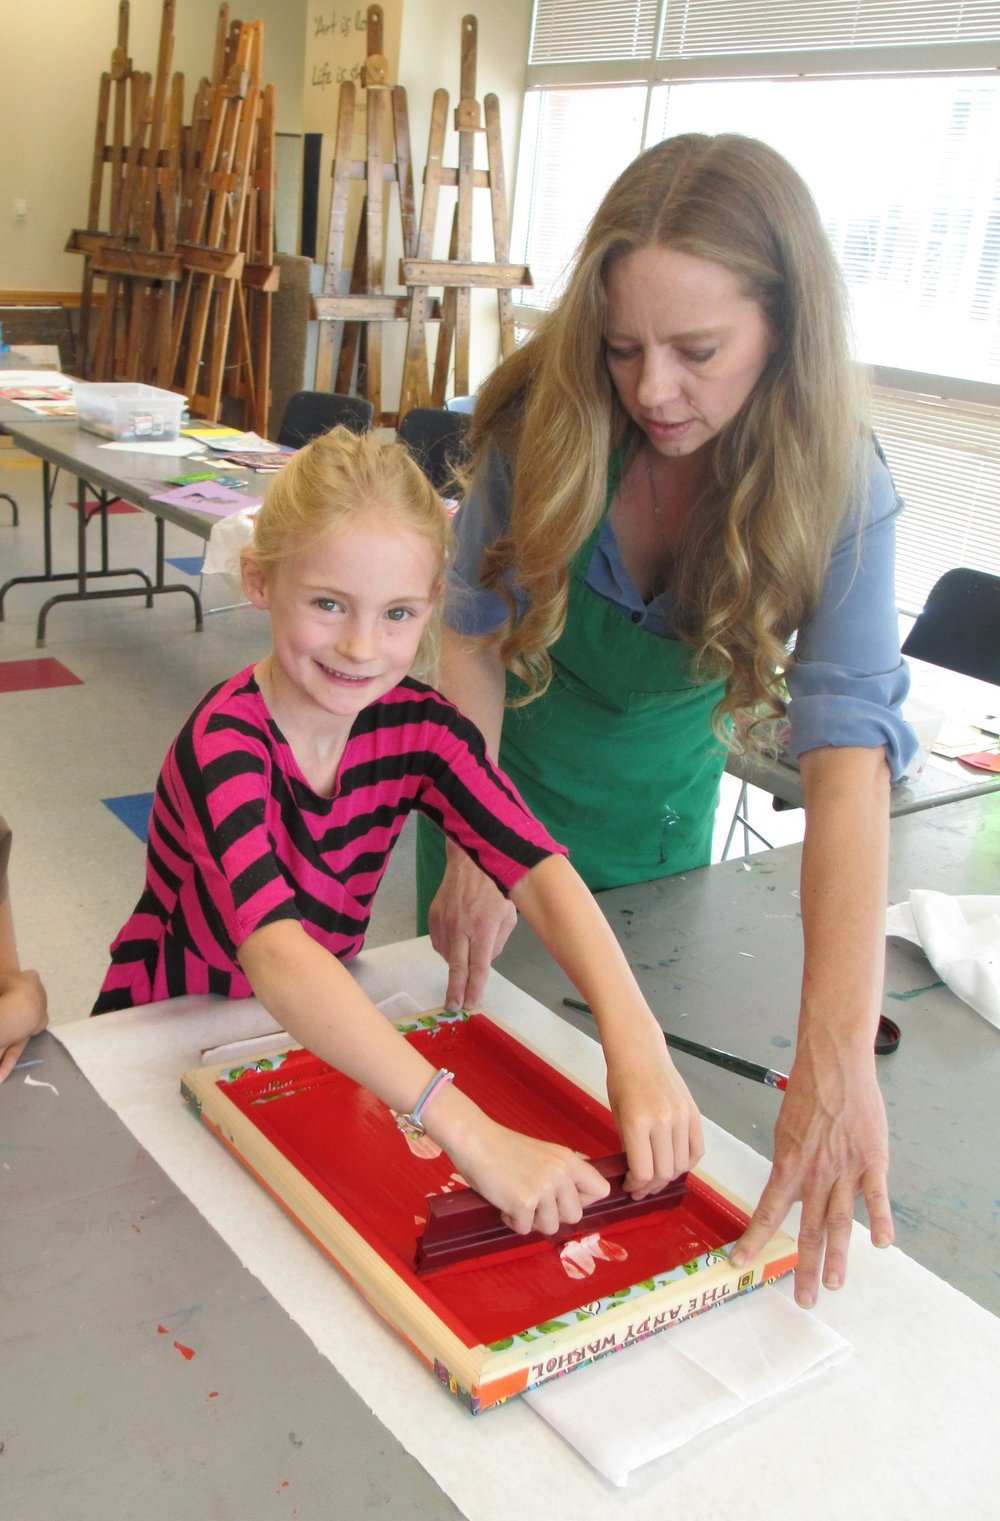 Printmaking for Youth, Ages 10-15, Spring Break Camp - March 26 through March 30, 20181:00 PM - 4:00 PM$112 Early registration; $117 Regular priceLakewood Cultural Center470 S Allison Pkwy., Lakewood, CO 80226